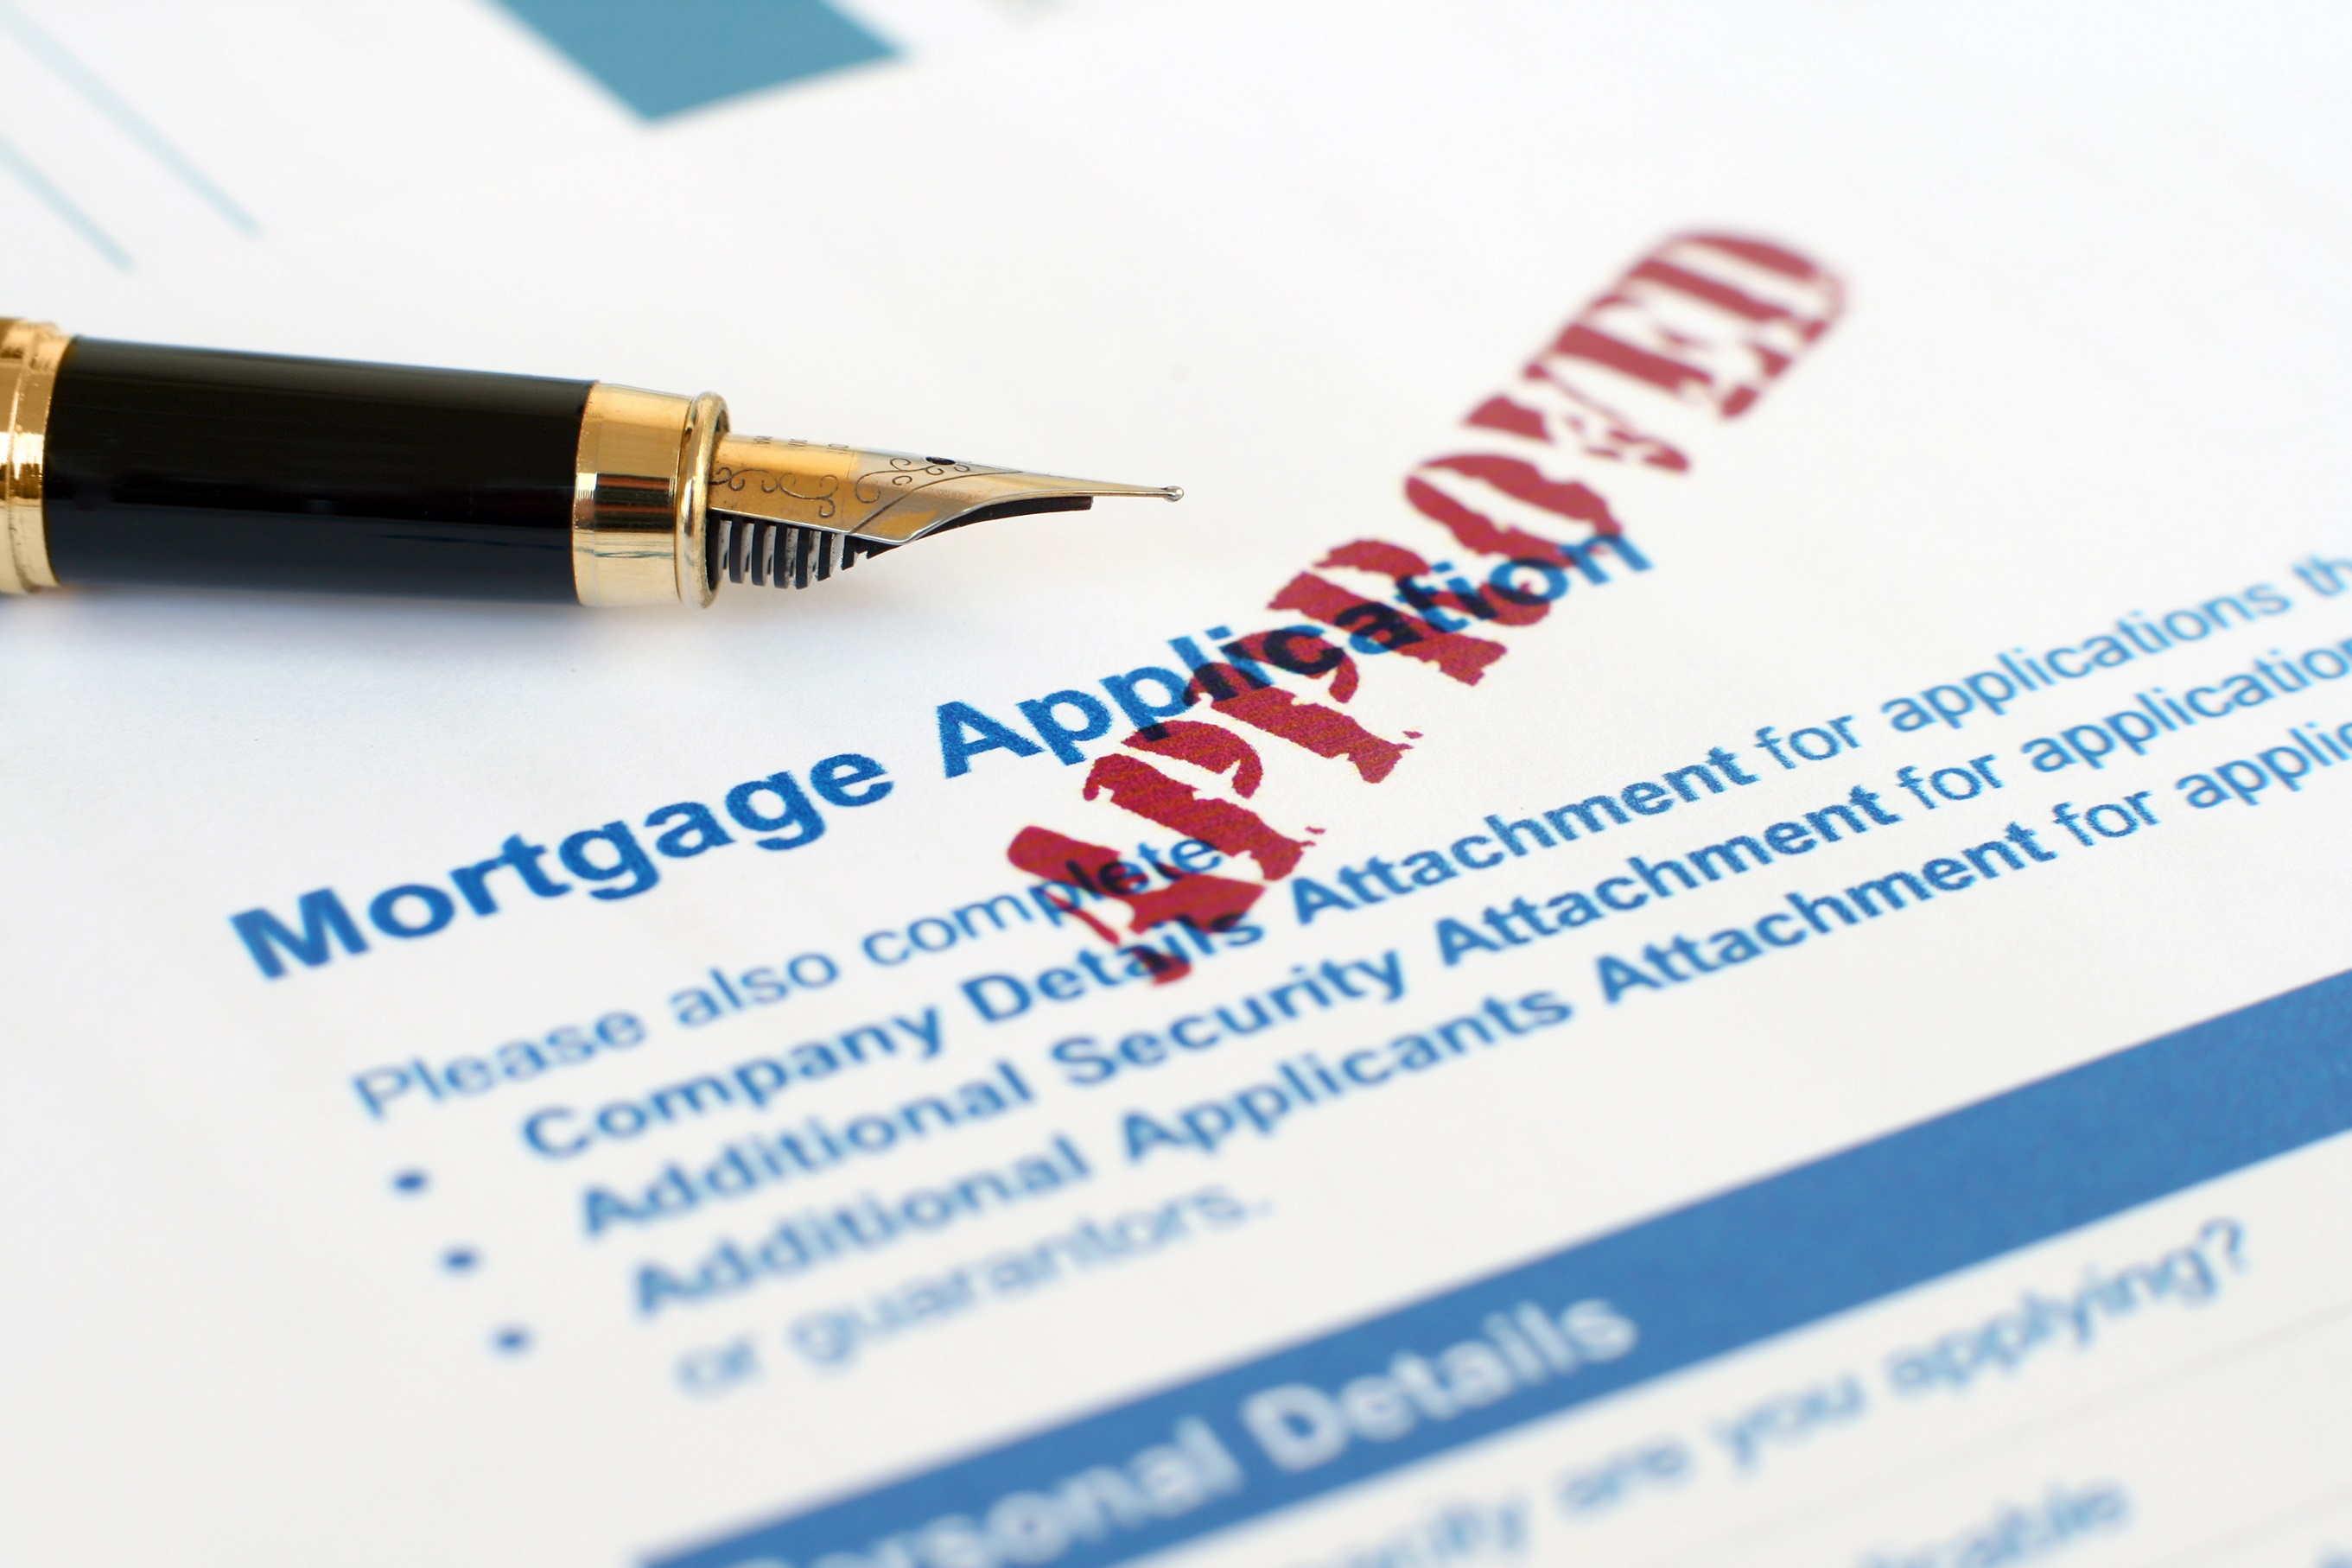 Do I really need a mortgage broker to obtain a pre-approval – can't I just go to my own bank?